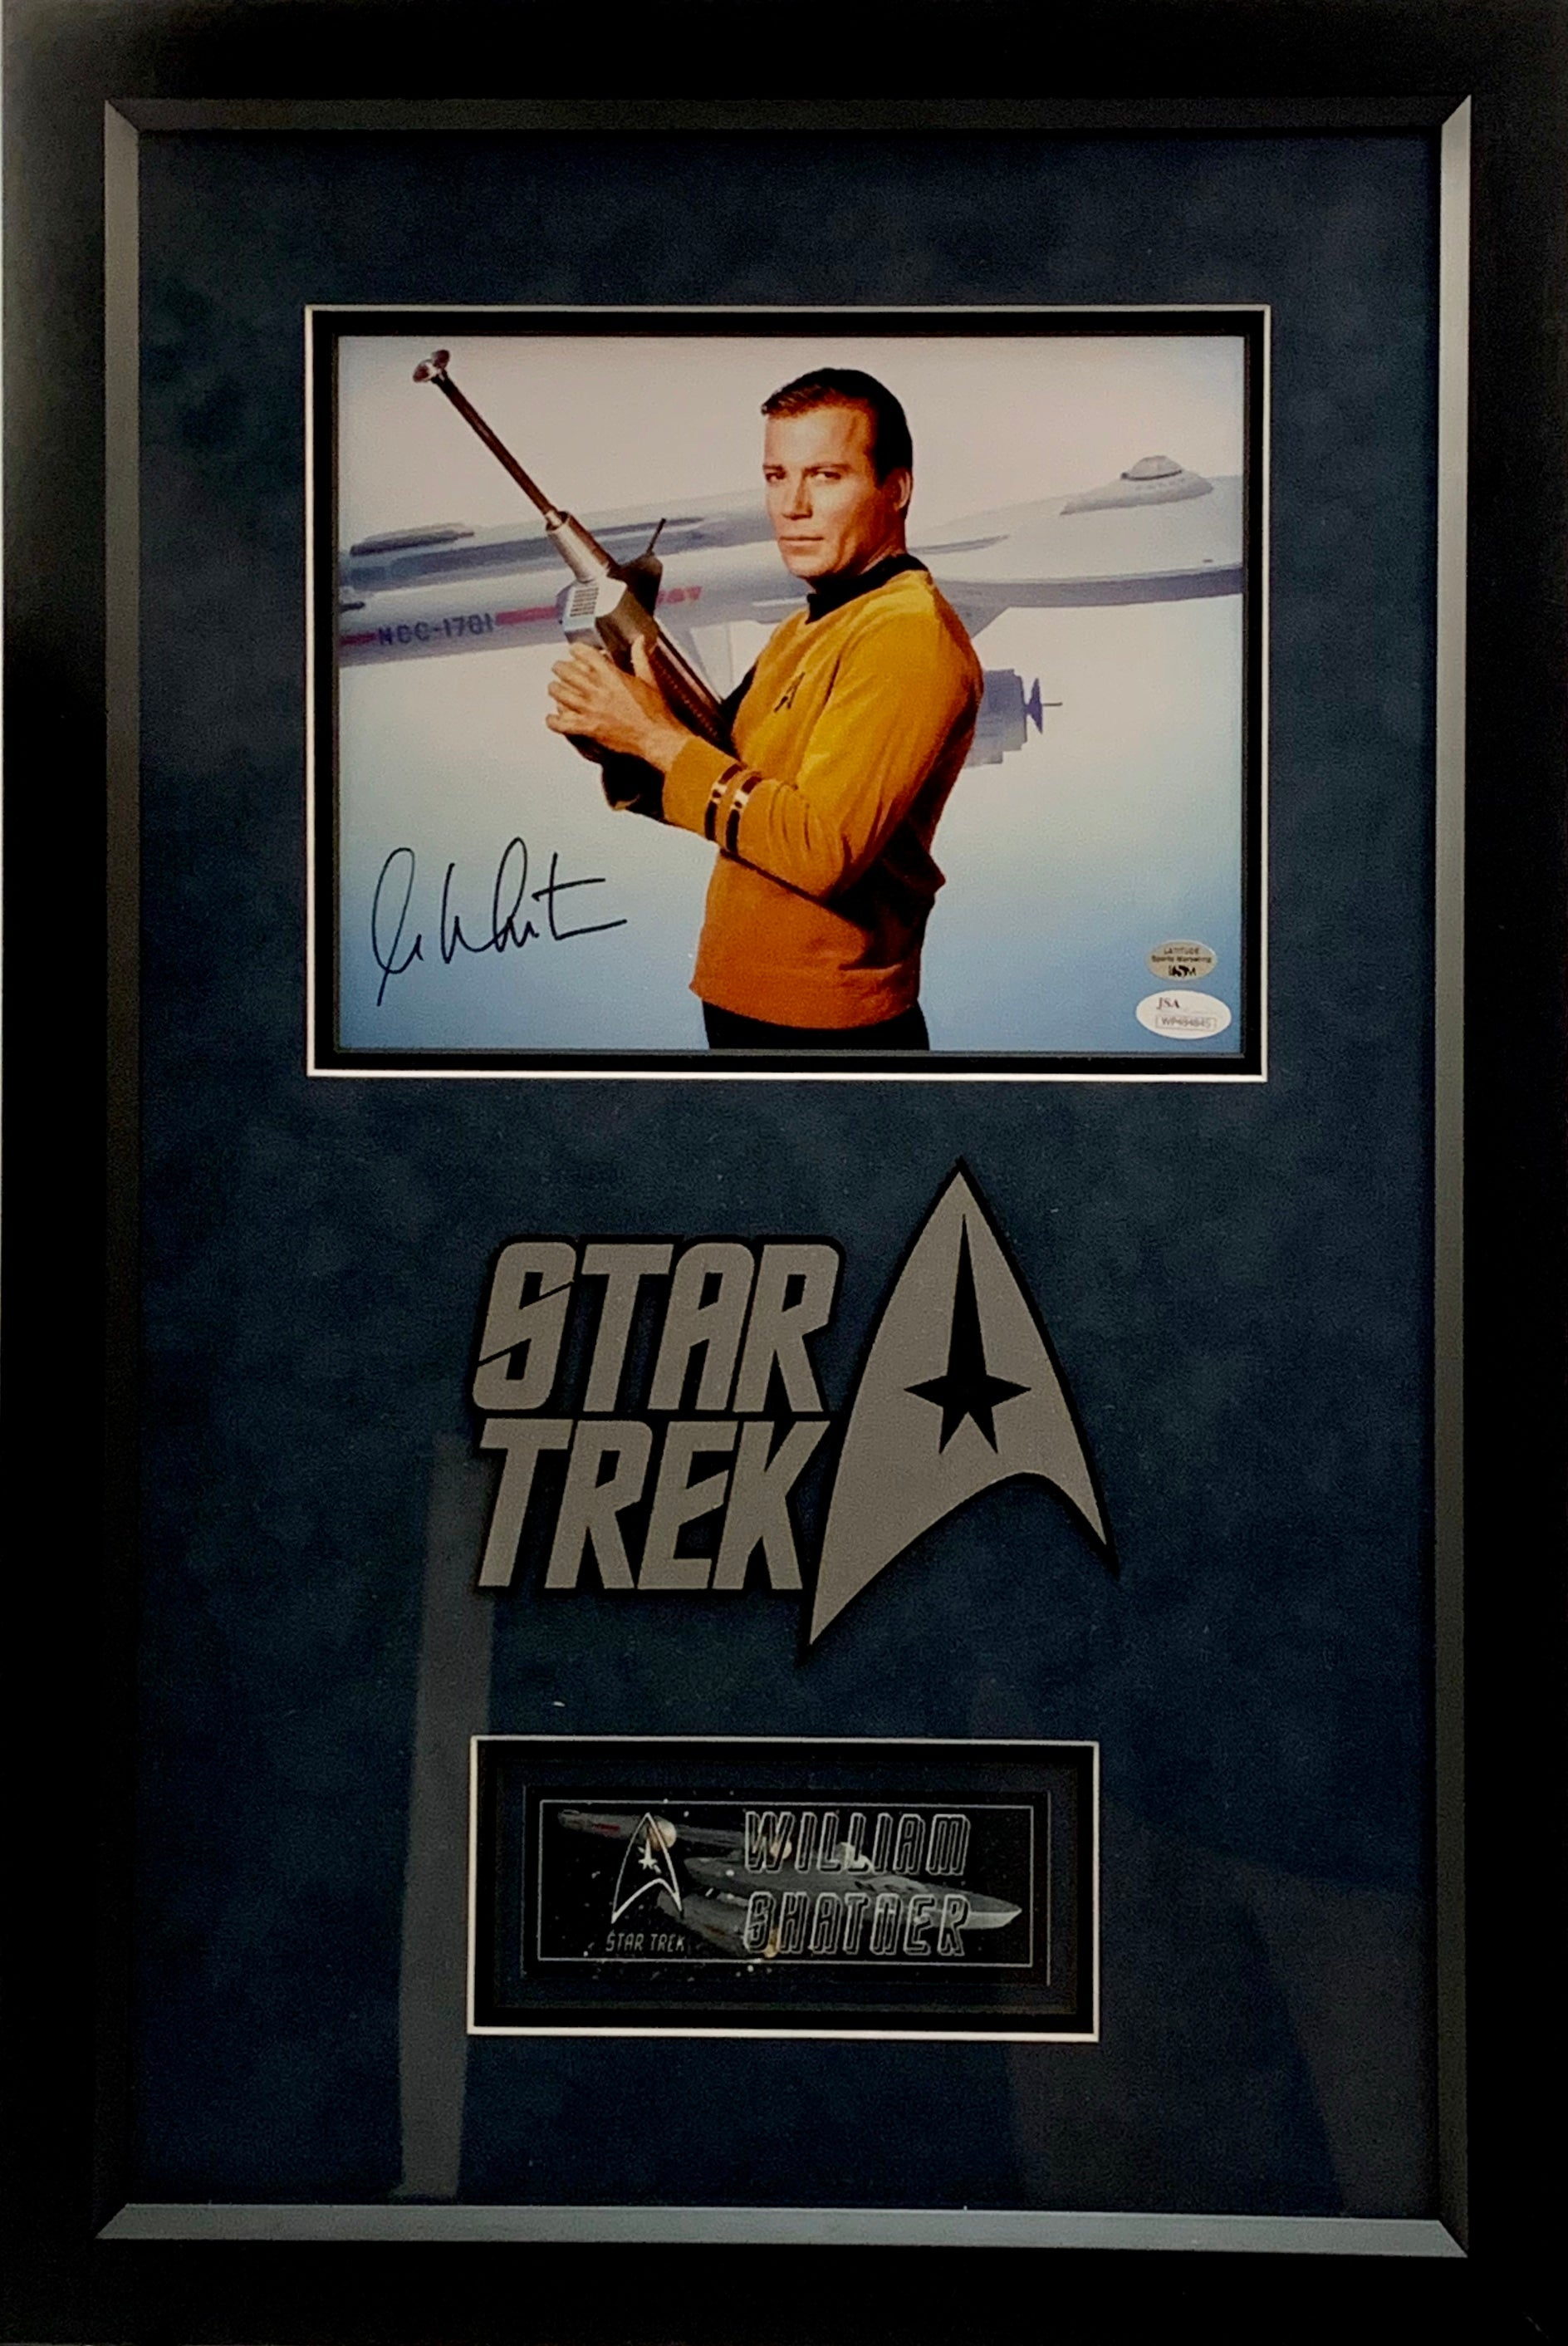 William Shatner Star Trek Signed 8x10 with Deluxe Frame - Latitude Sports Marketing